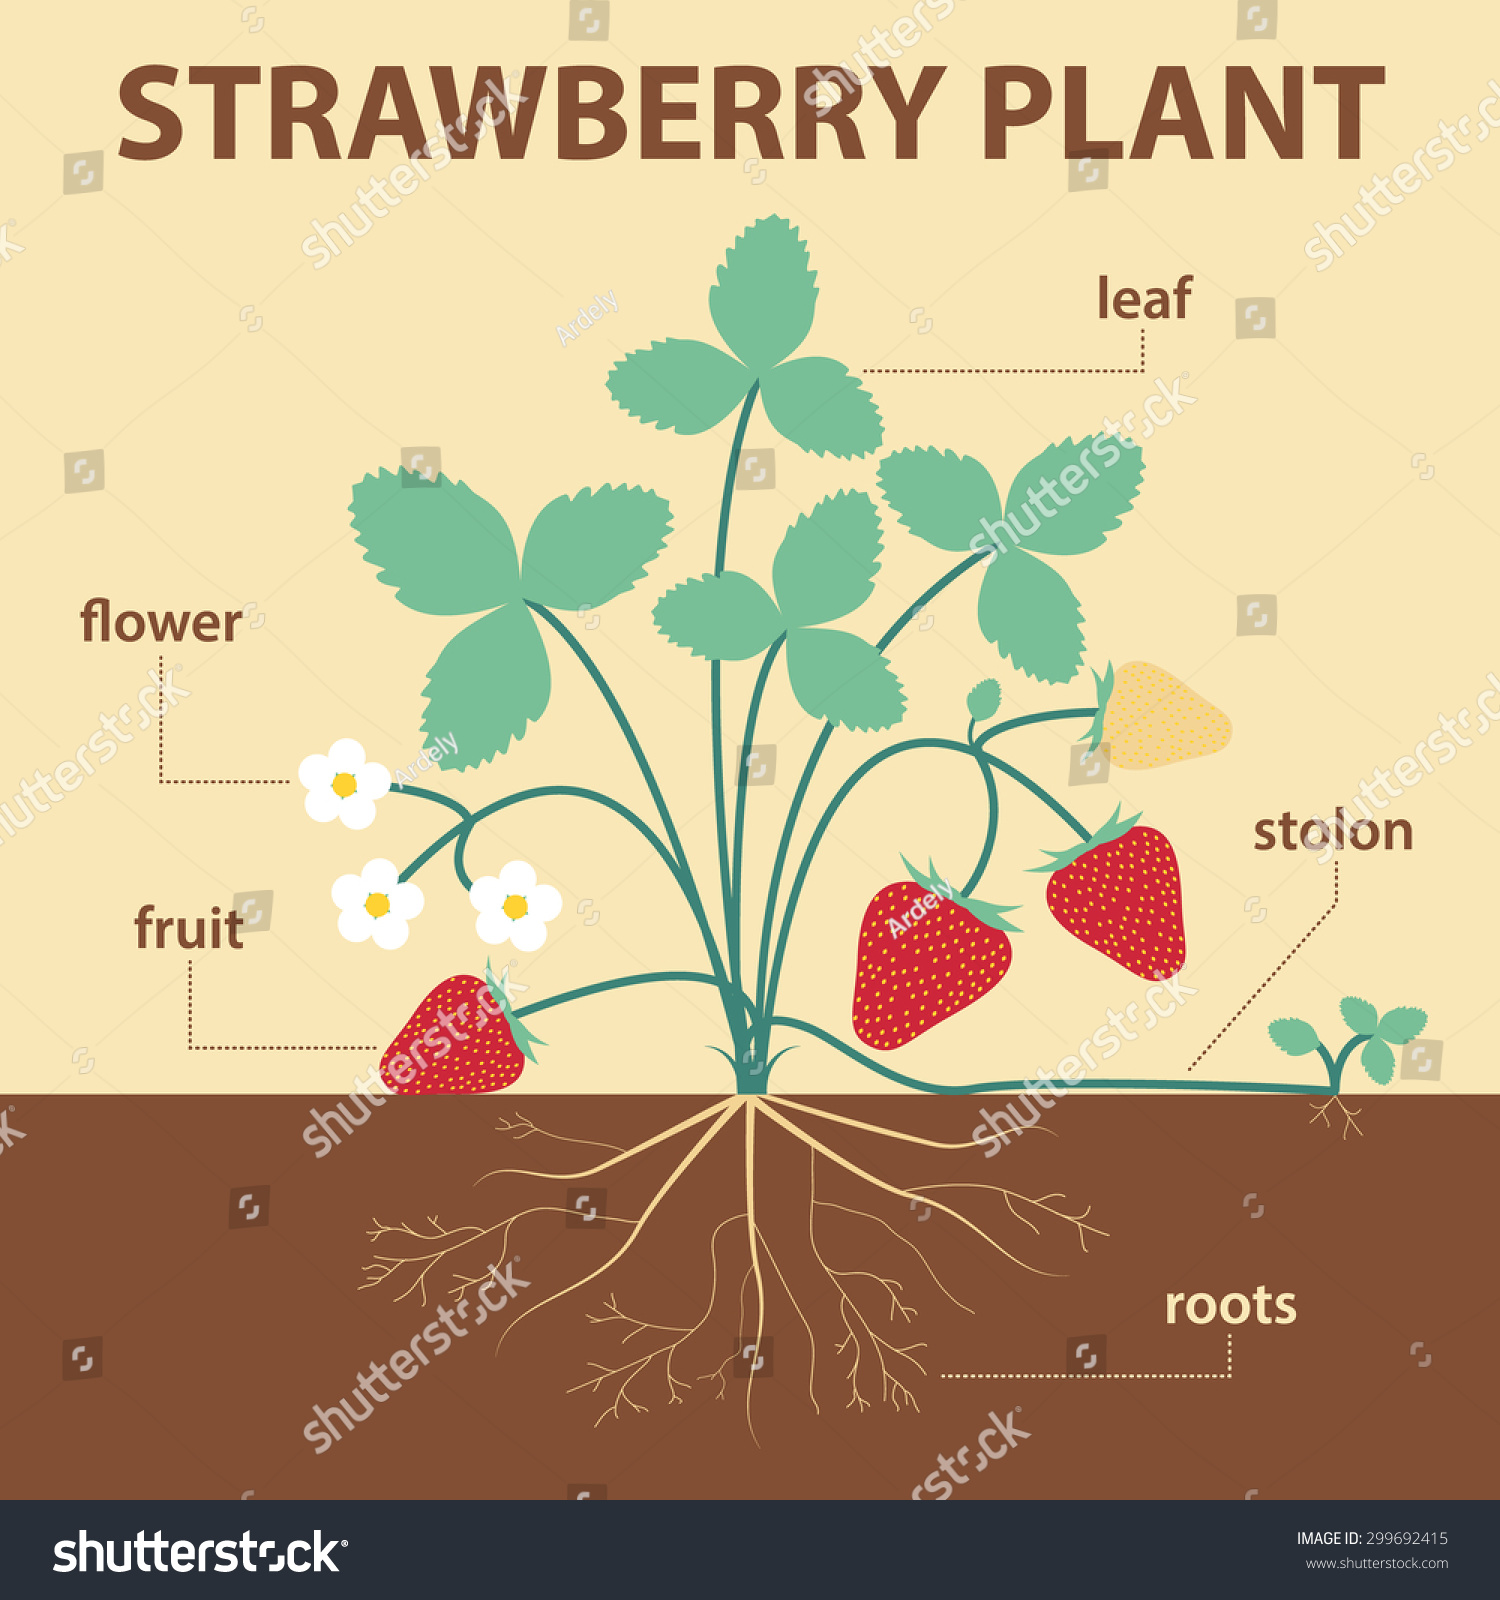 strawberry fruit diagram how to create a network vector illustration showing parts of whole